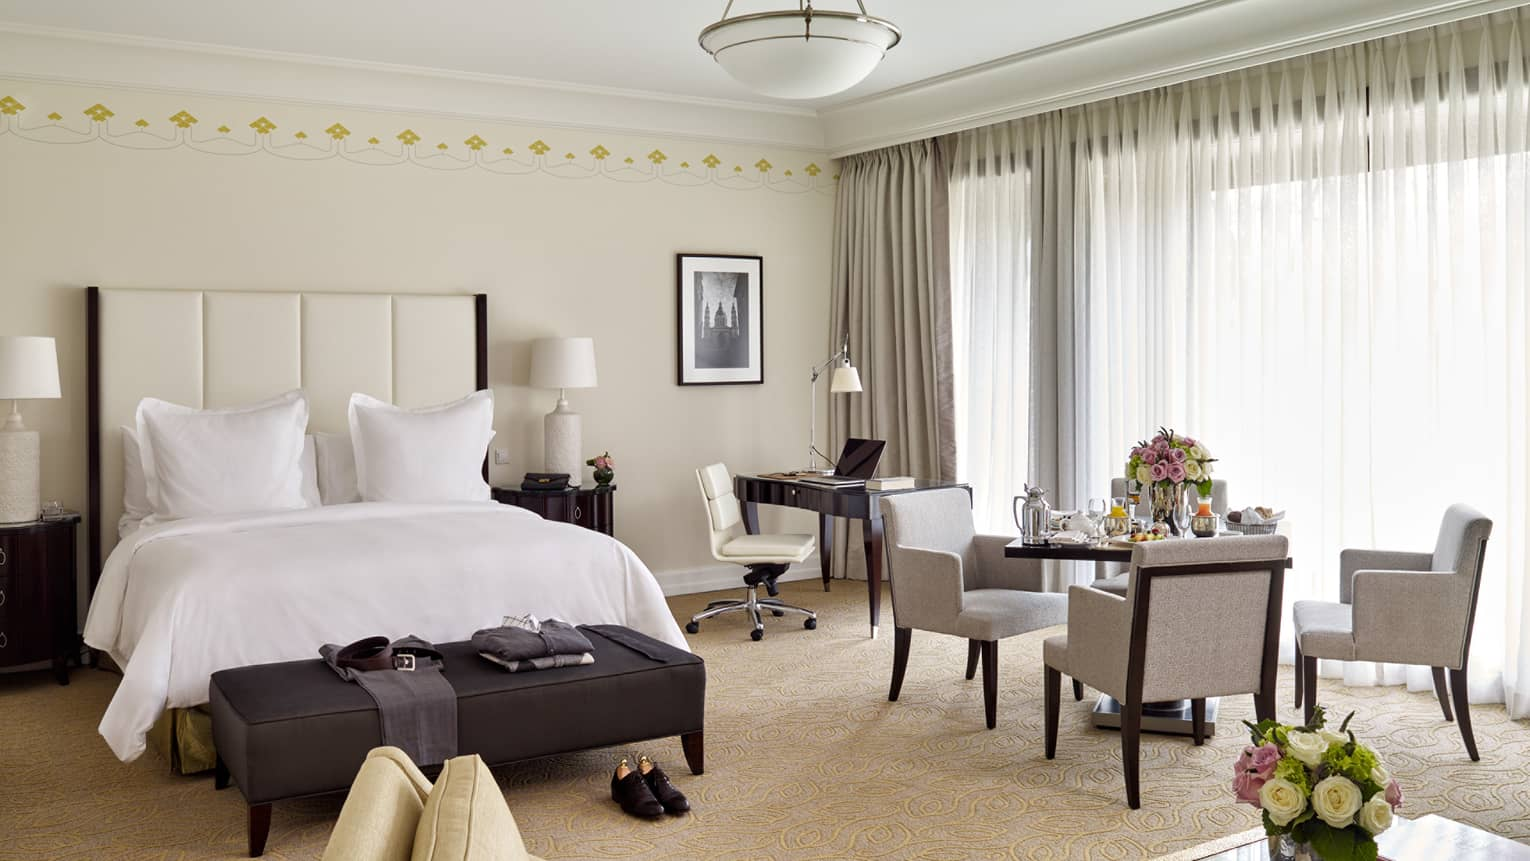 Park Suite dining table with in-room dining breakfast in front of long white curtains, beside bed and desk